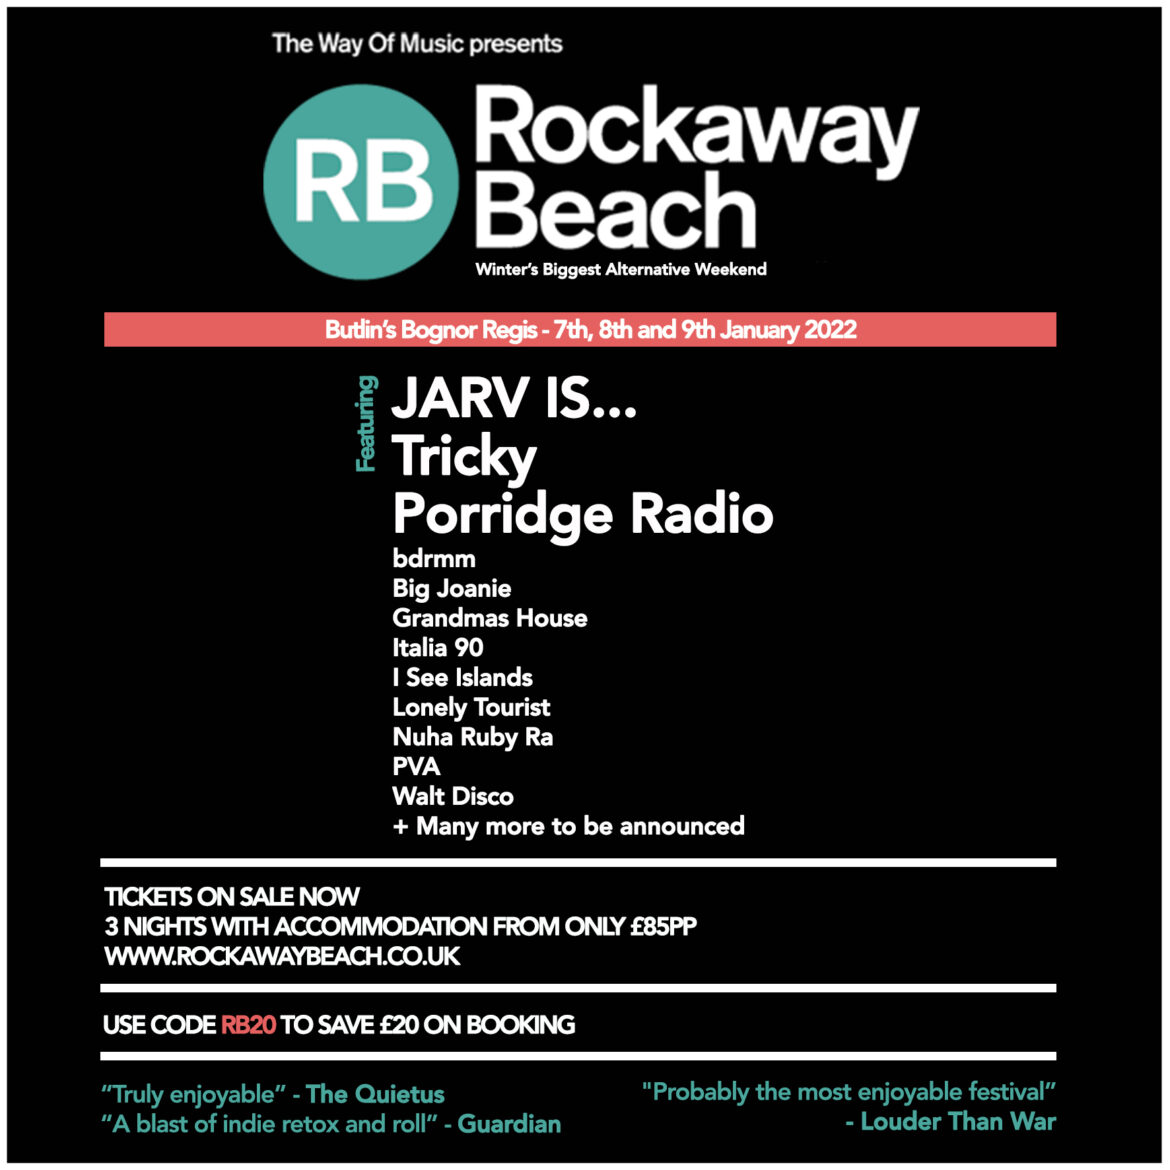 NEWS: Rockaway Beach 2022 headliners announced